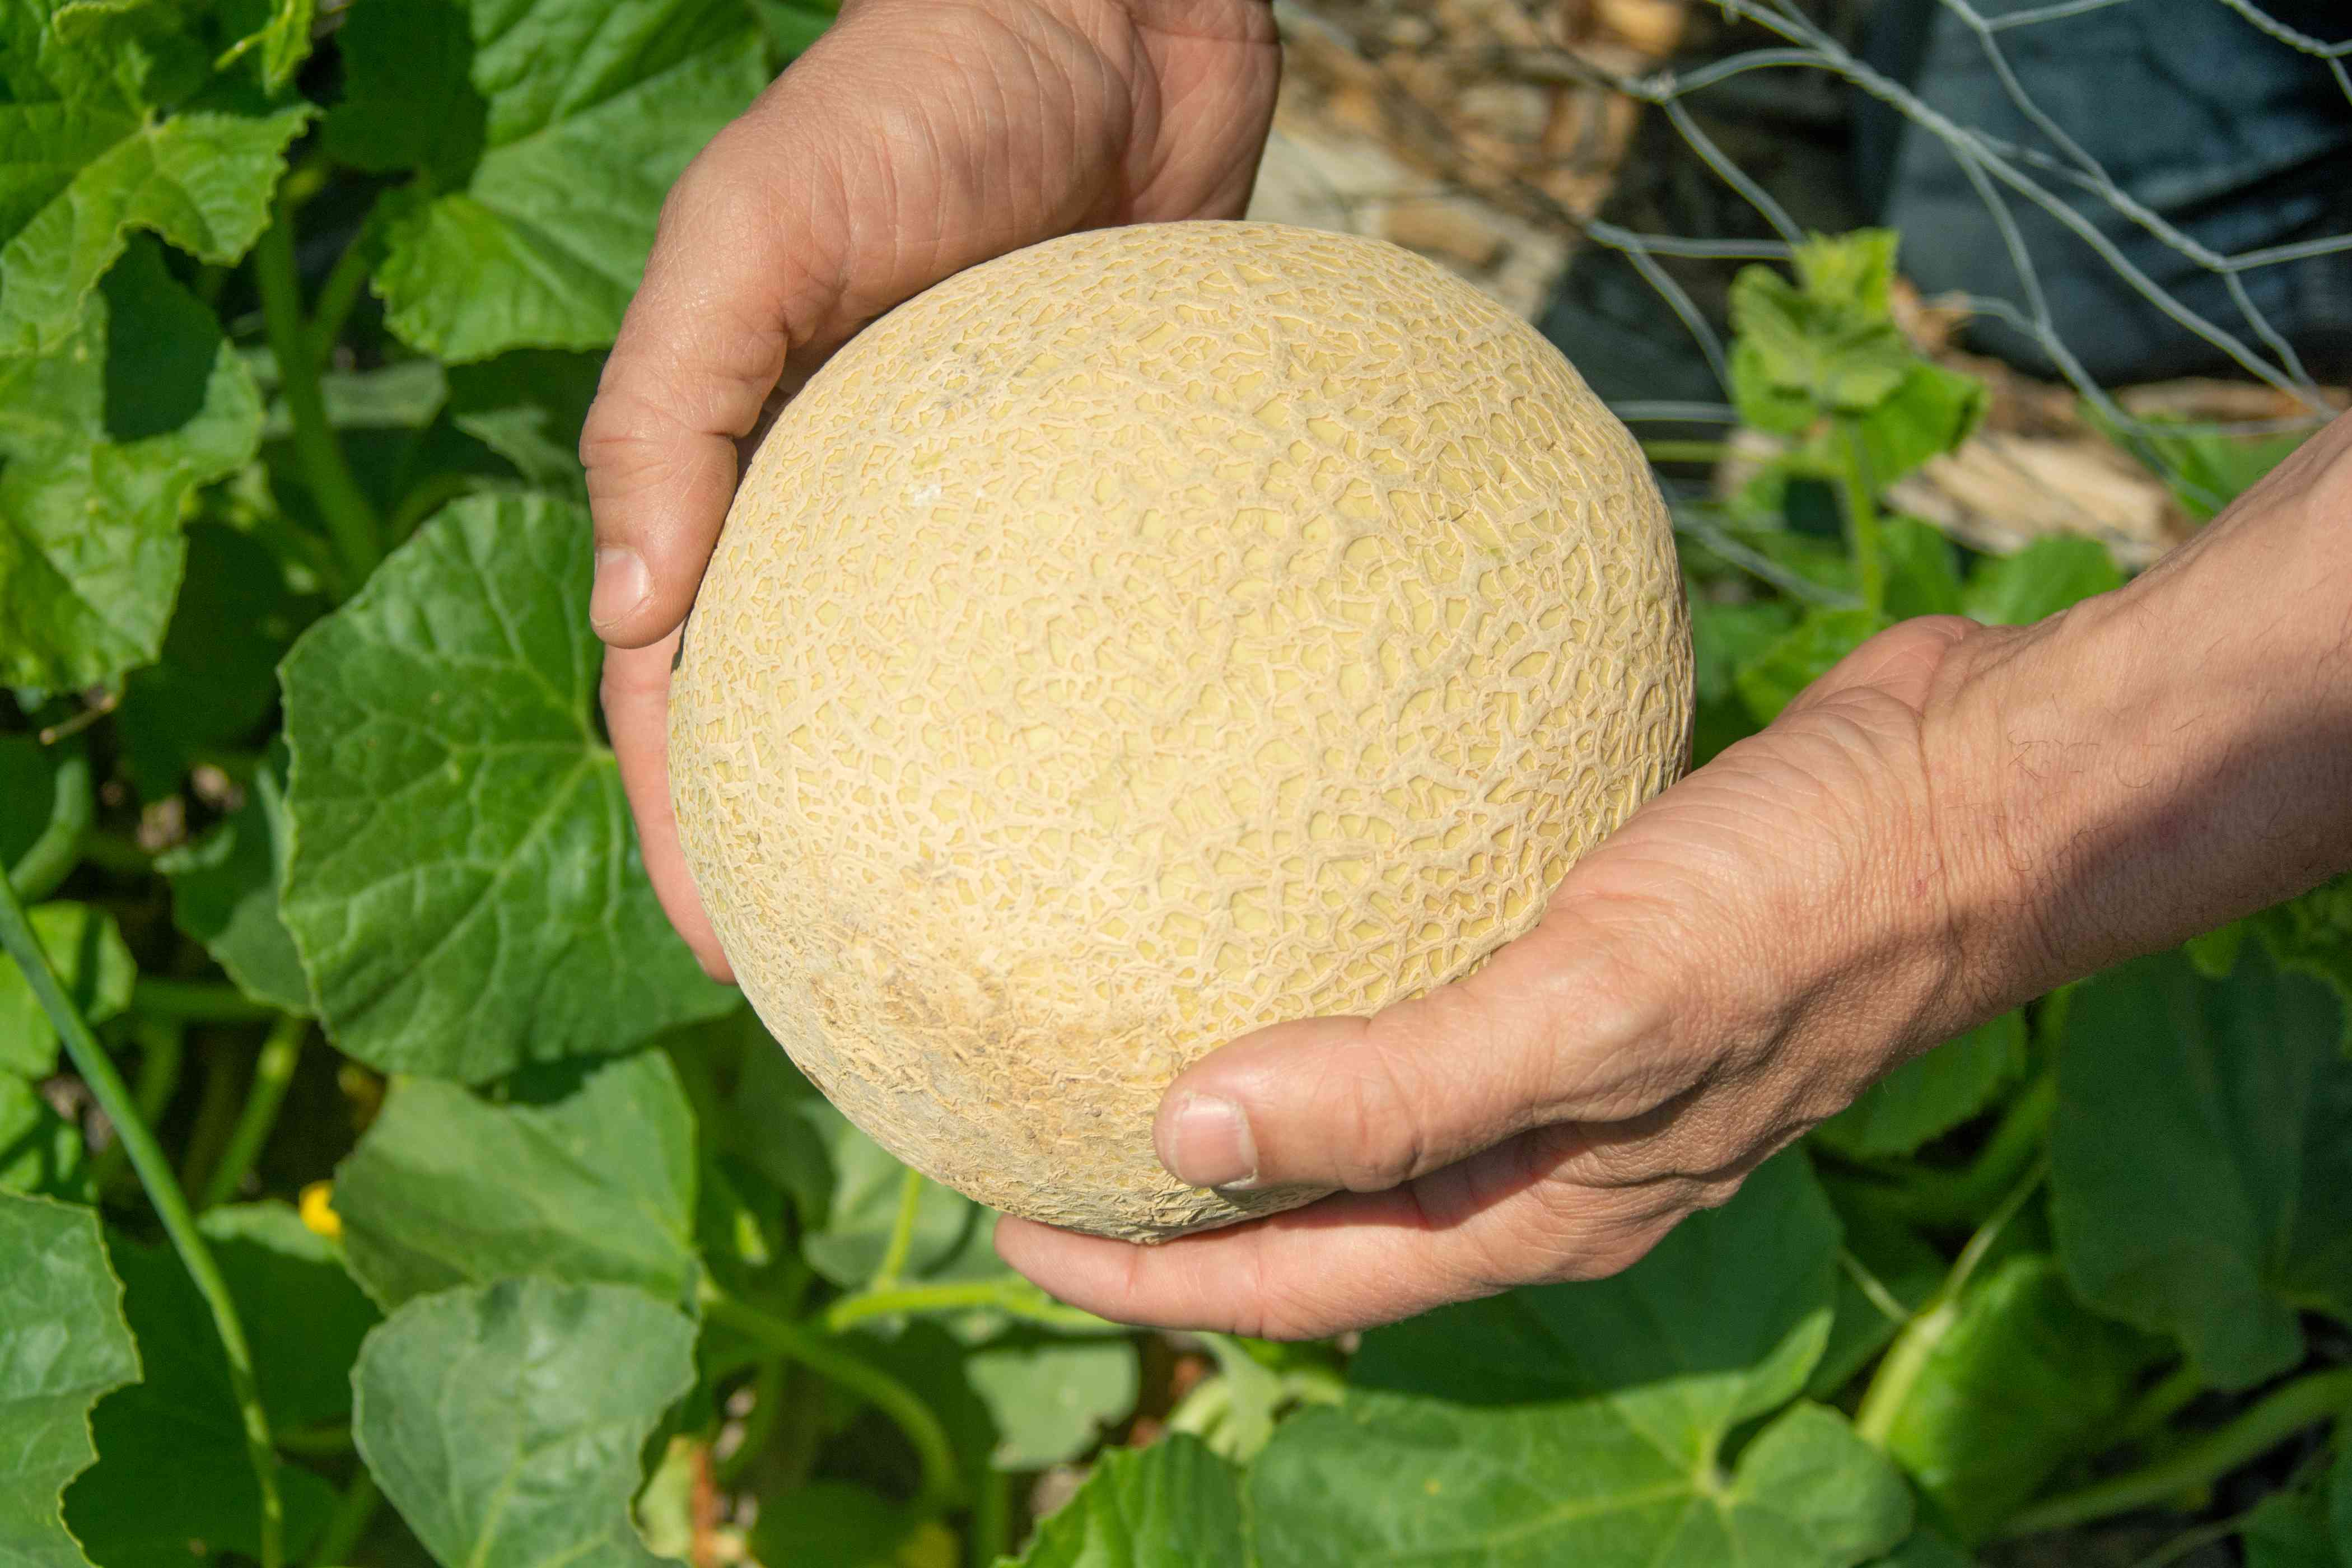 Cantaloupe fruit being held in hands over leaves